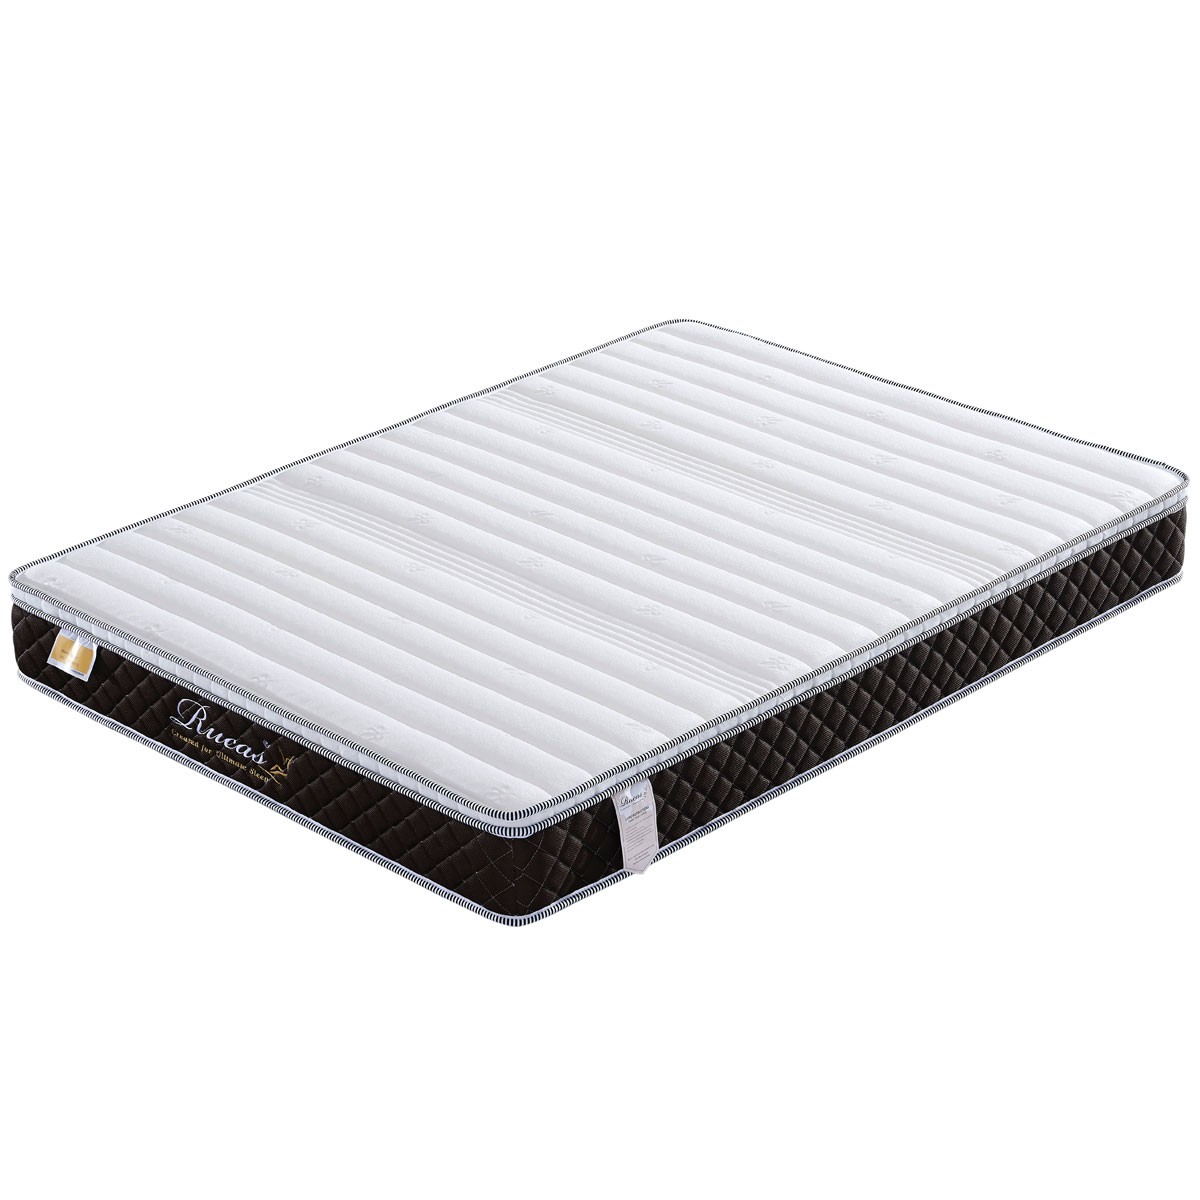 Comfortable Memory Foam Mattress with Independent Spring (DK-SRU1414-183B)